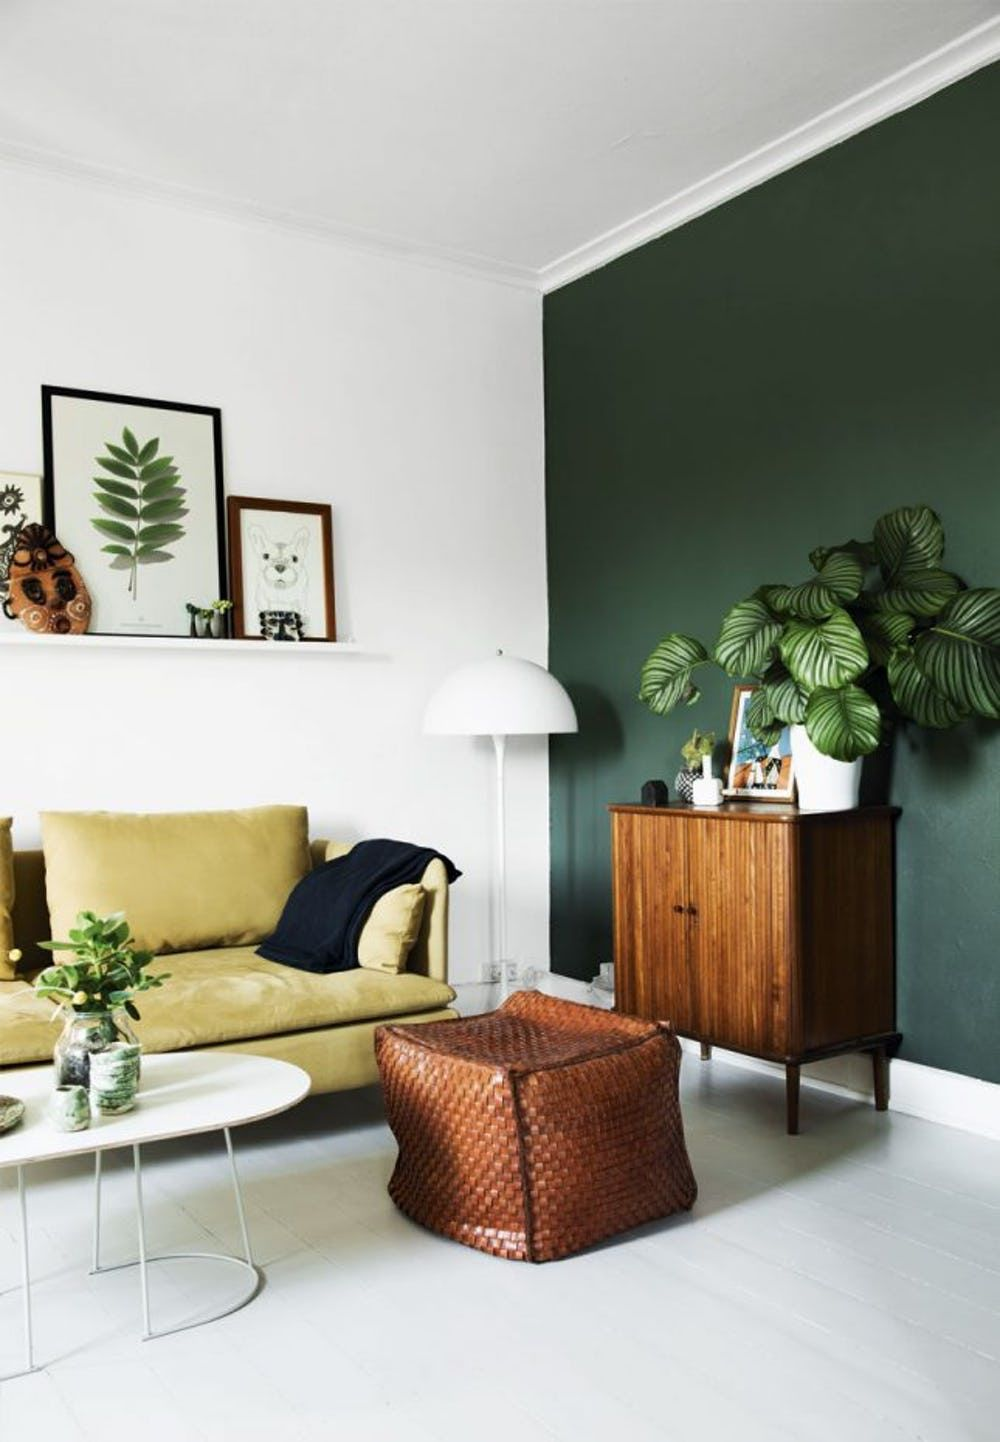 18 Ways To Decorate With The New Ochre Color Trend Green Walls Living Room Accent Walls In Living Room Dark Green Living Room Living room accent colors